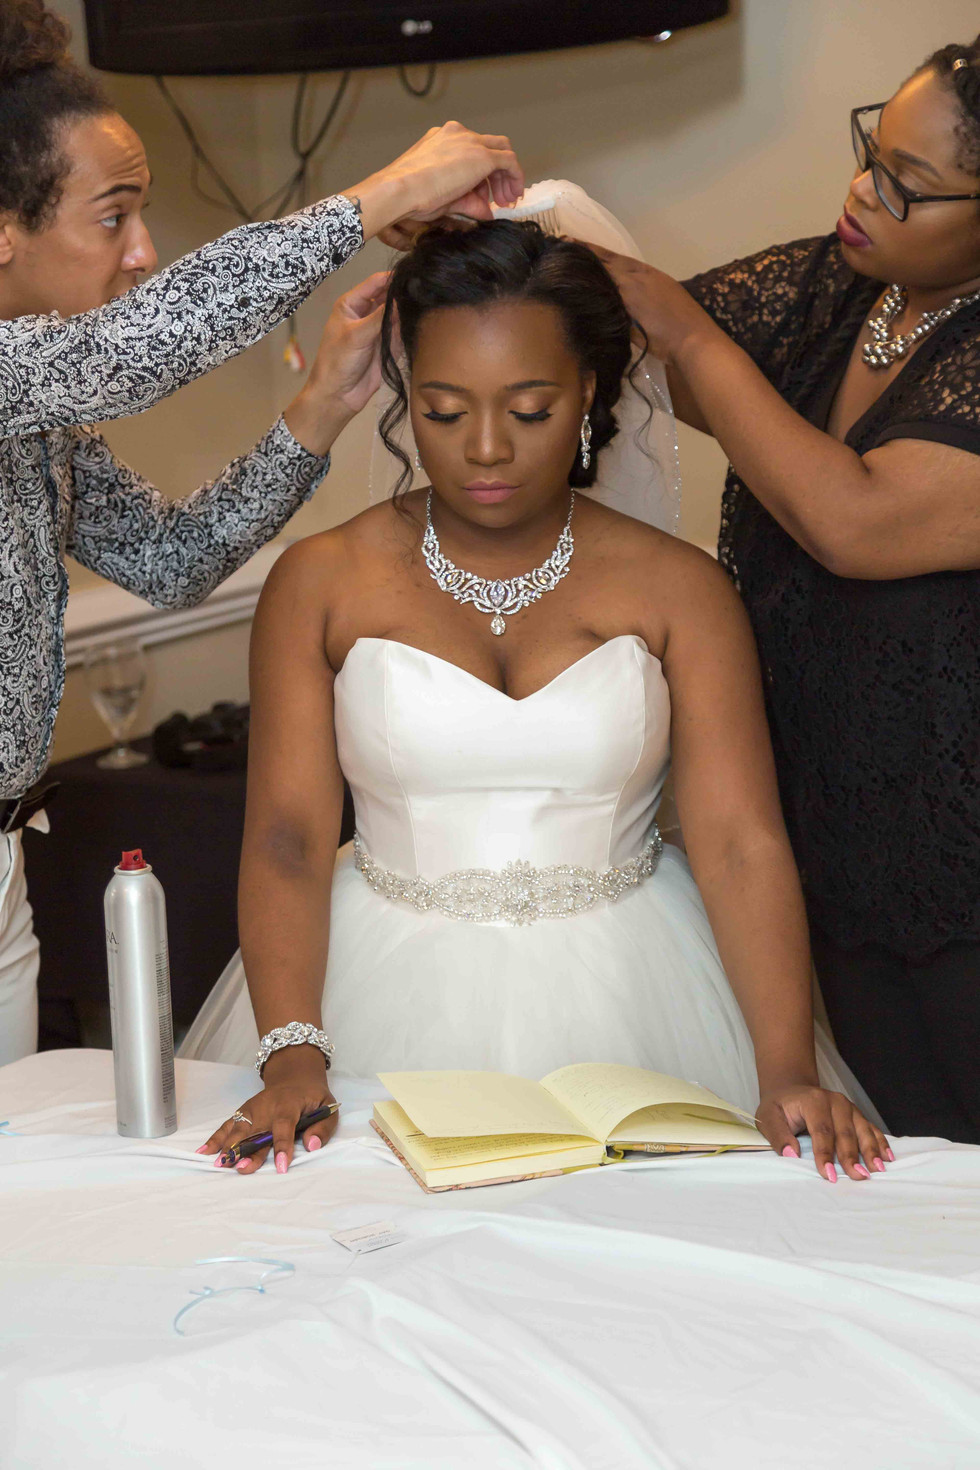 Bride getting her veil put on